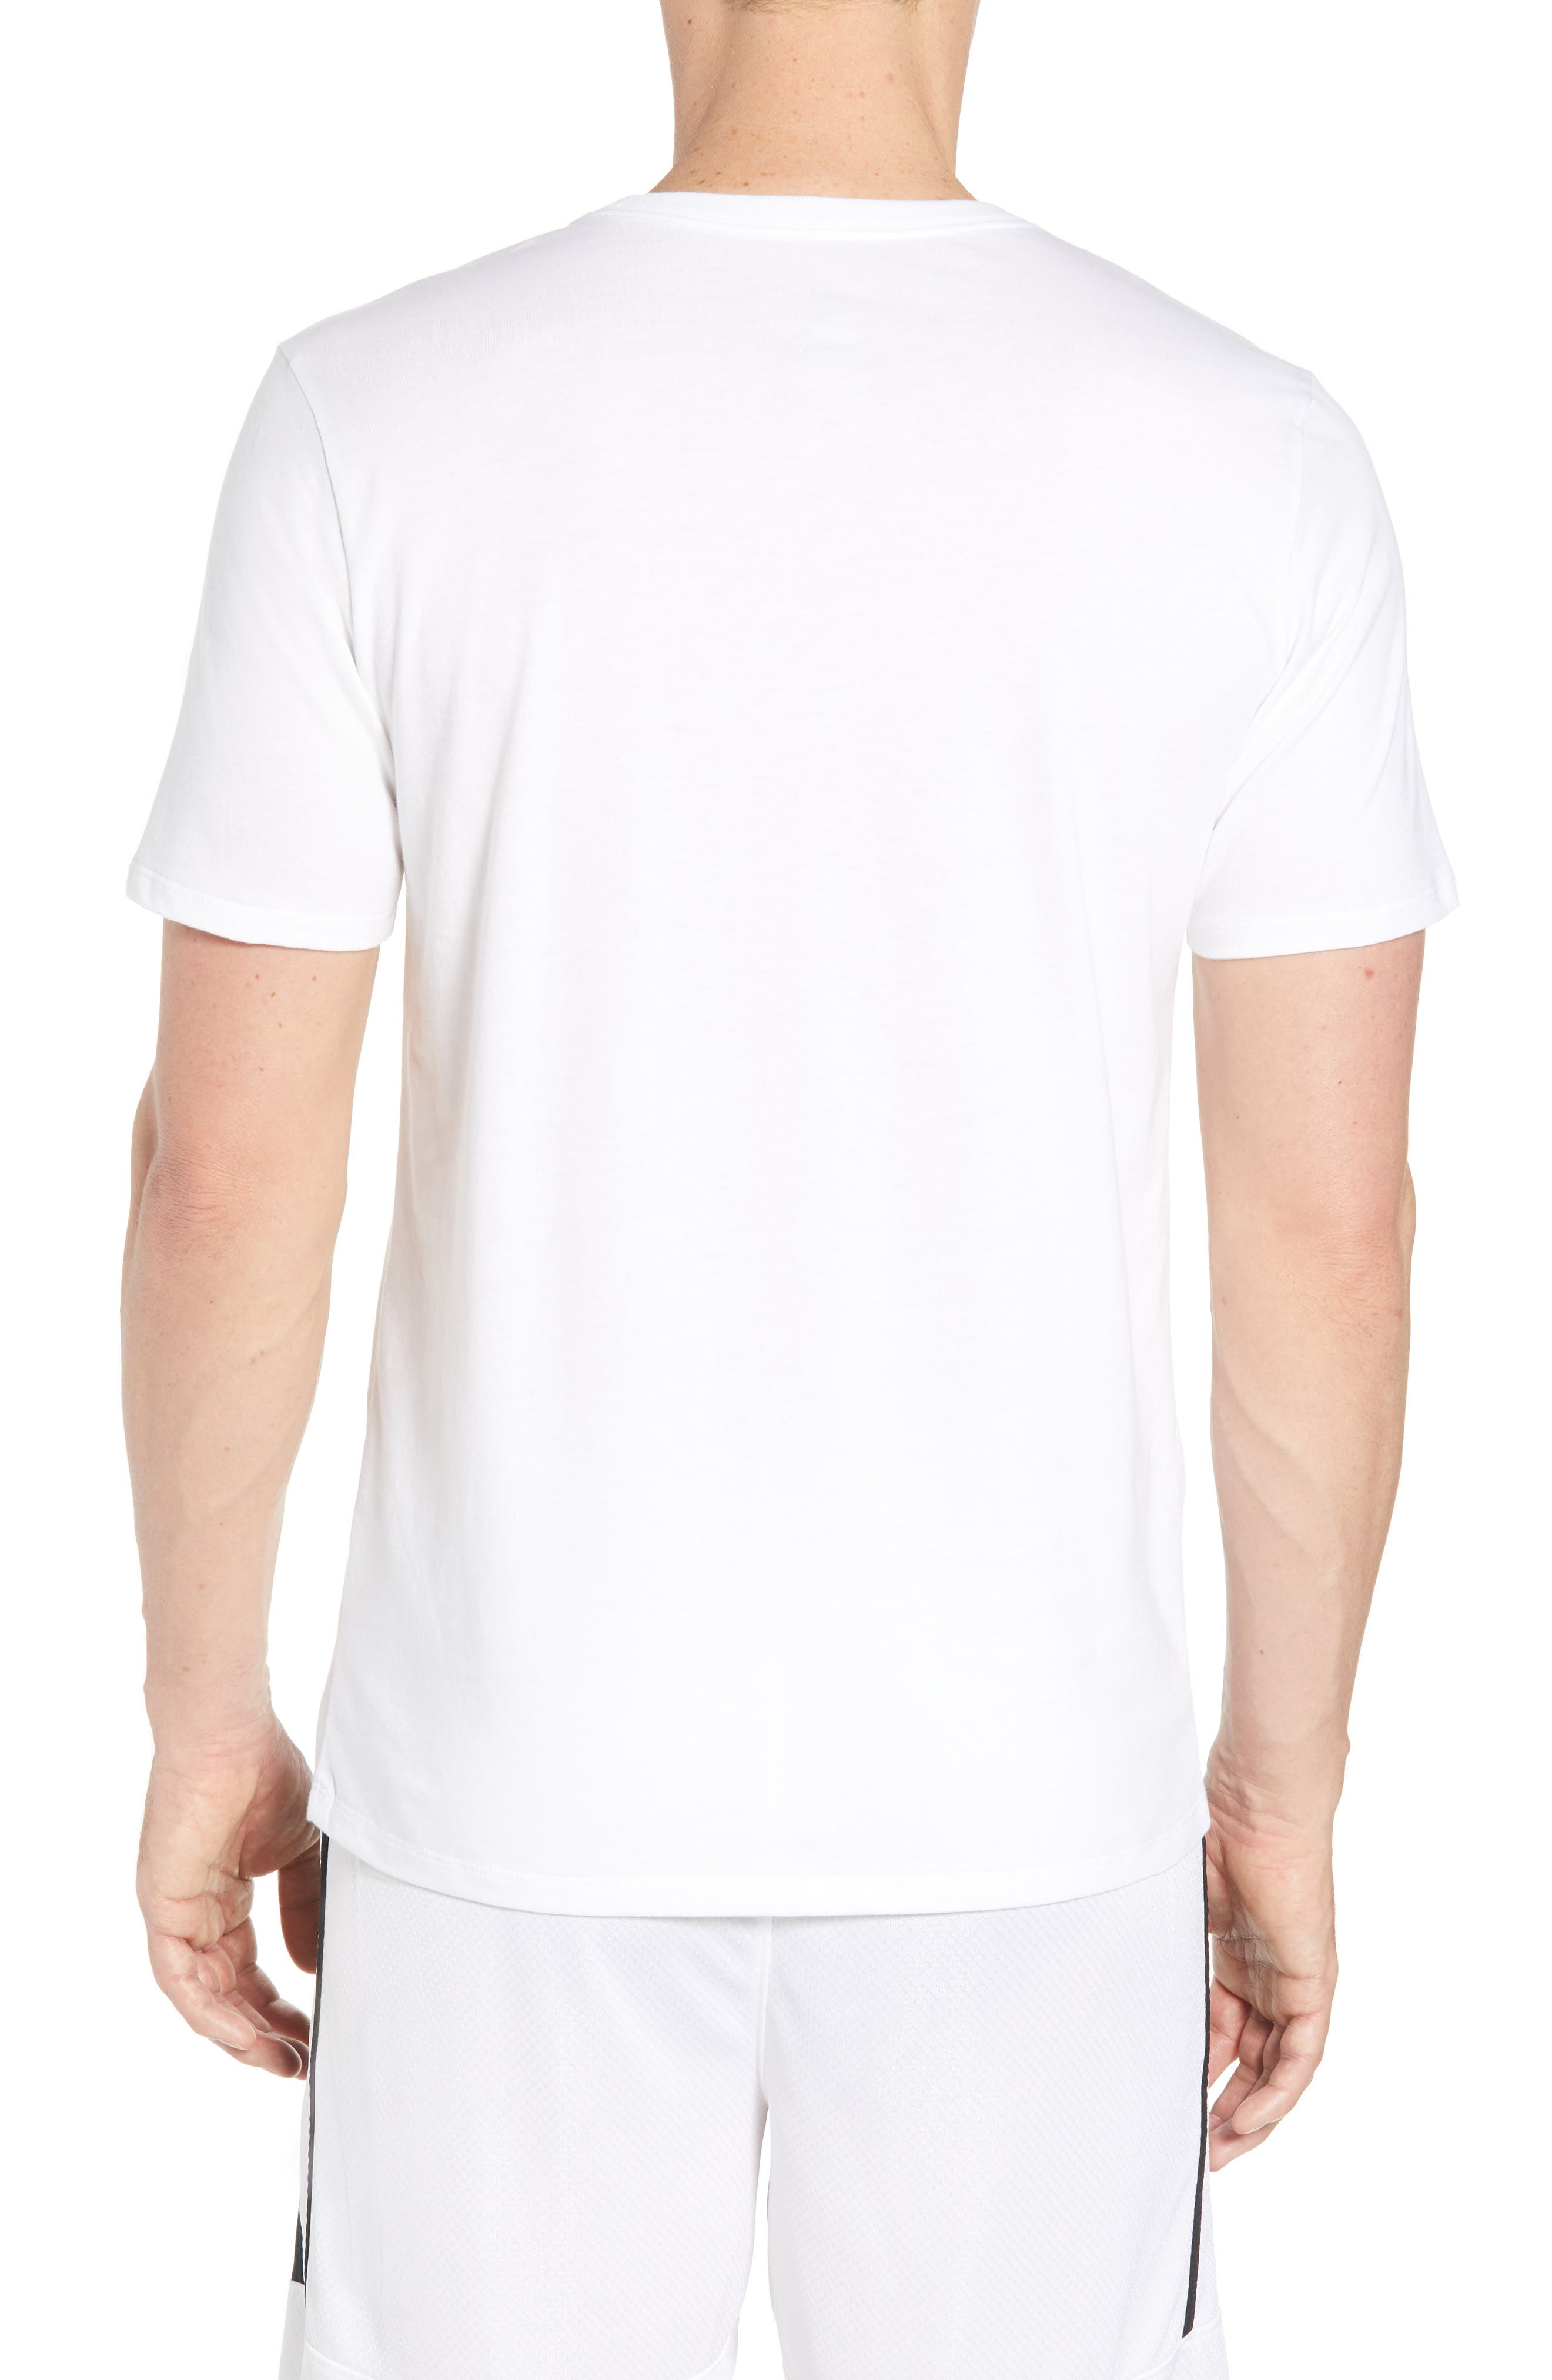 Sports Illustrated Graphic T-Shirt,                             Alternate thumbnail 4, color,